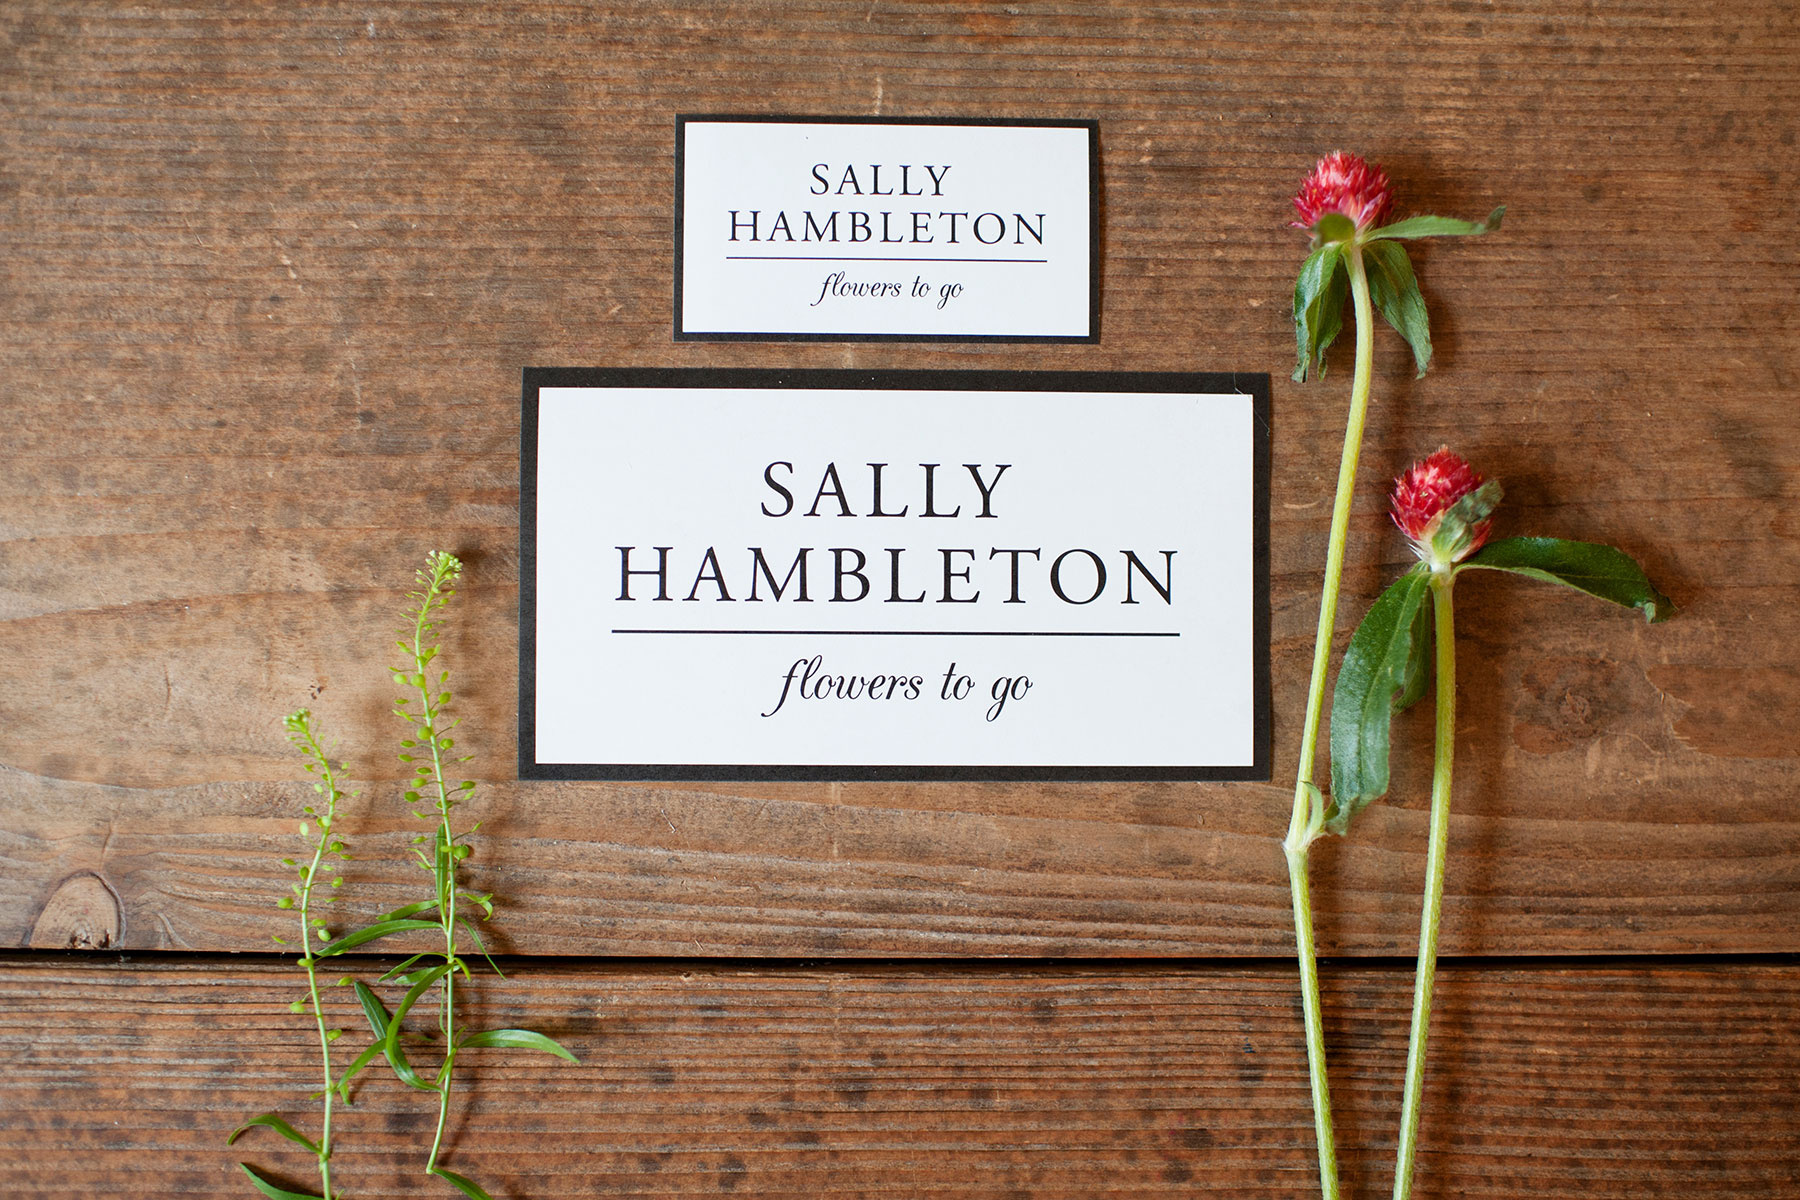 sally_hambleton_flowers_to_go_429148291_1800x1200